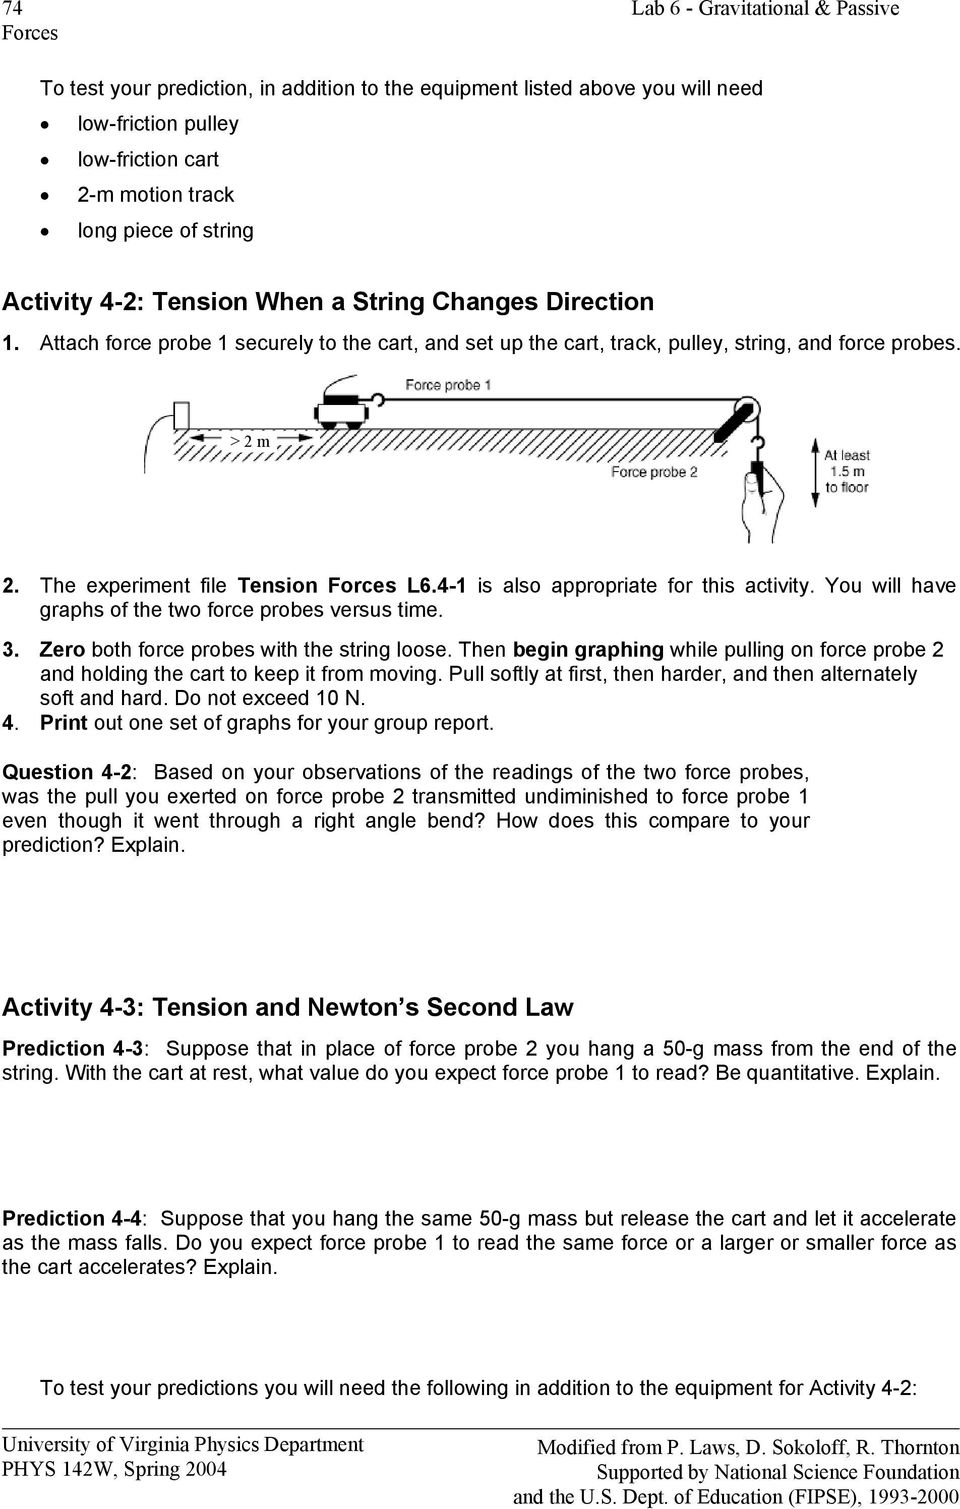 The experiment file Tension Forces L6.4-1 is also appropriate for this activity. You will have graphs of the two force probes versus time. 3. Zero both force probes with the string loose.